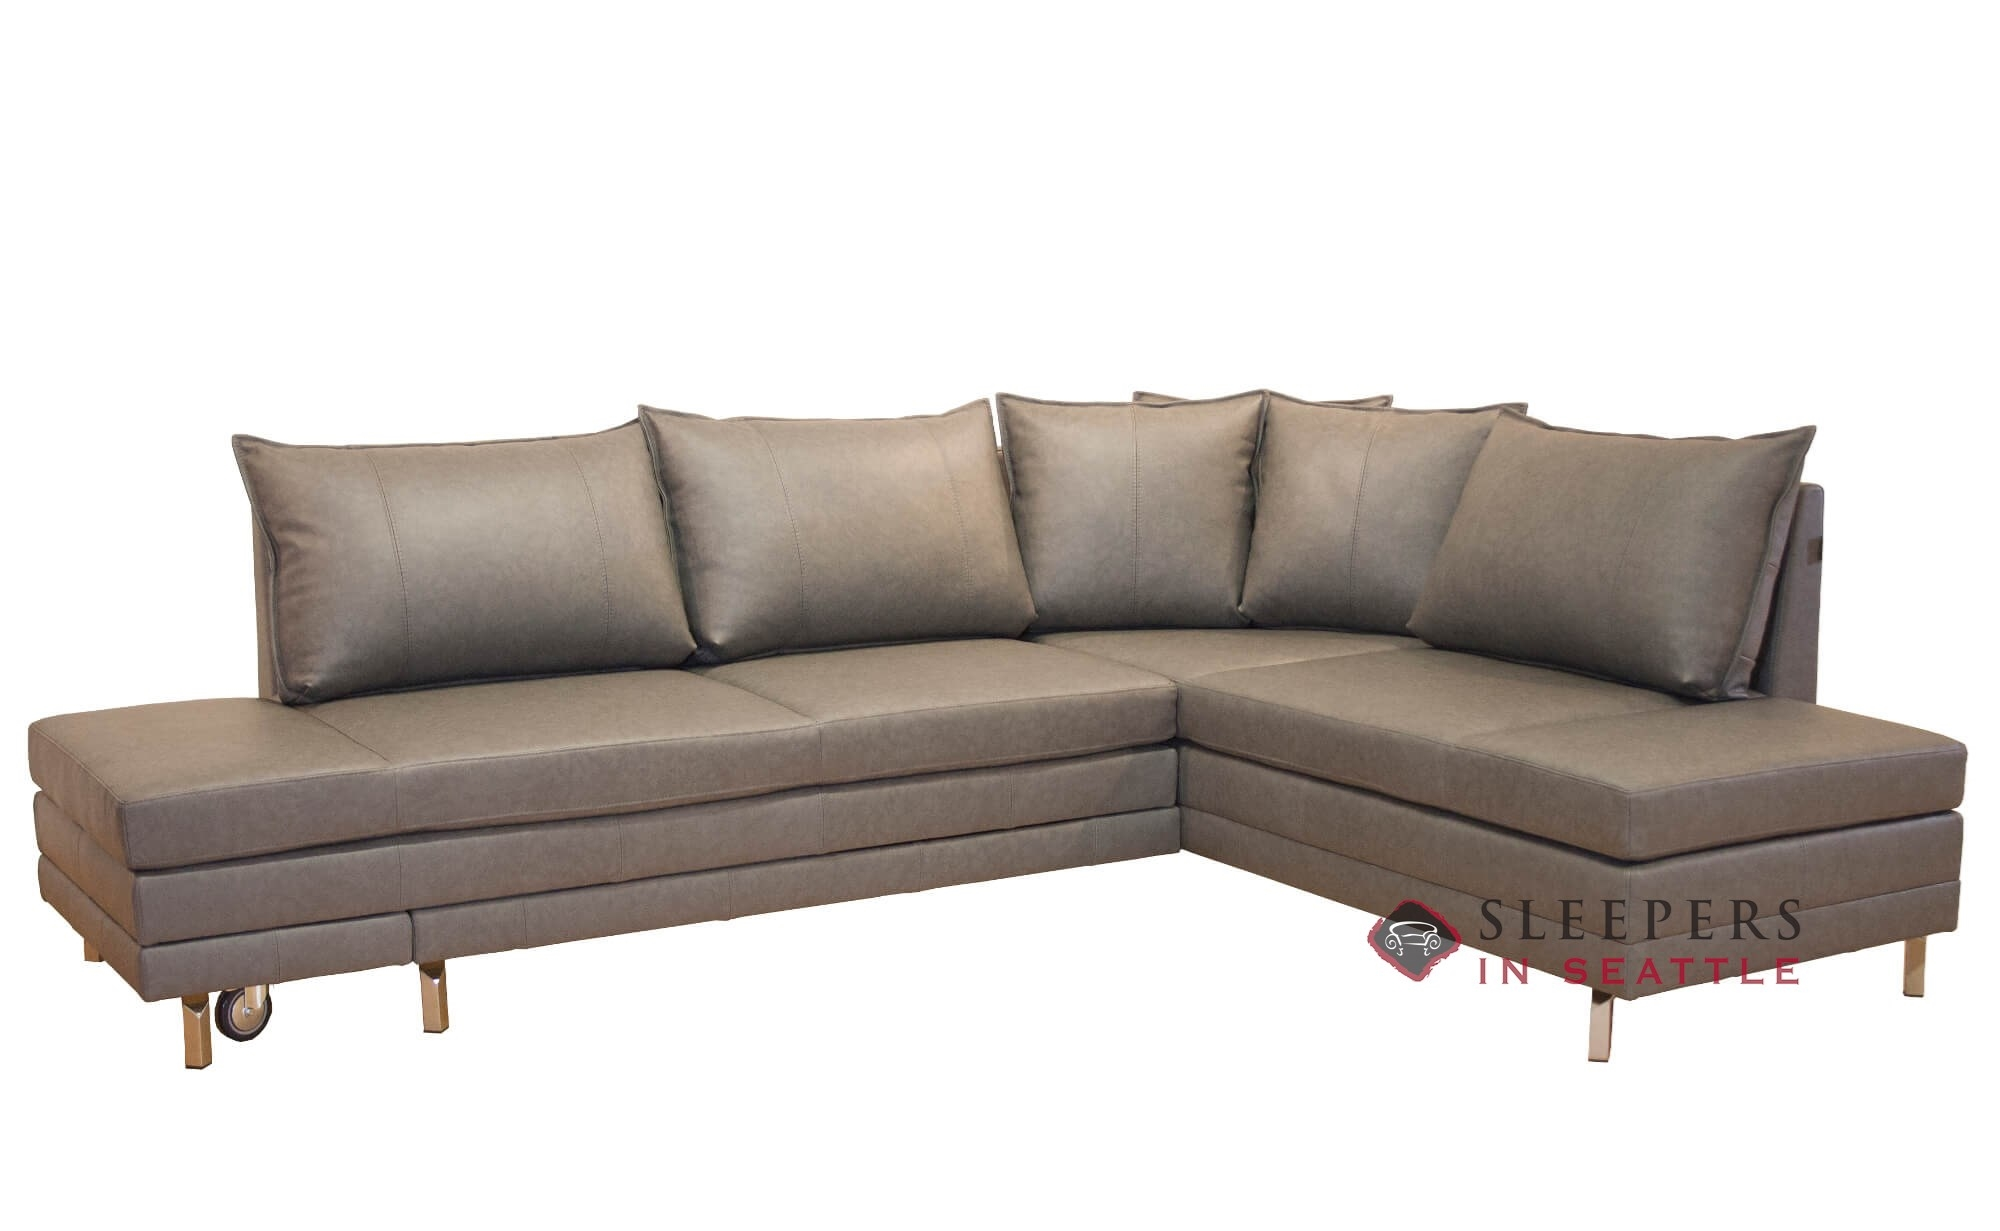 Luonto Curry Chaise Sectional Queen Leather Sleeper Sofa